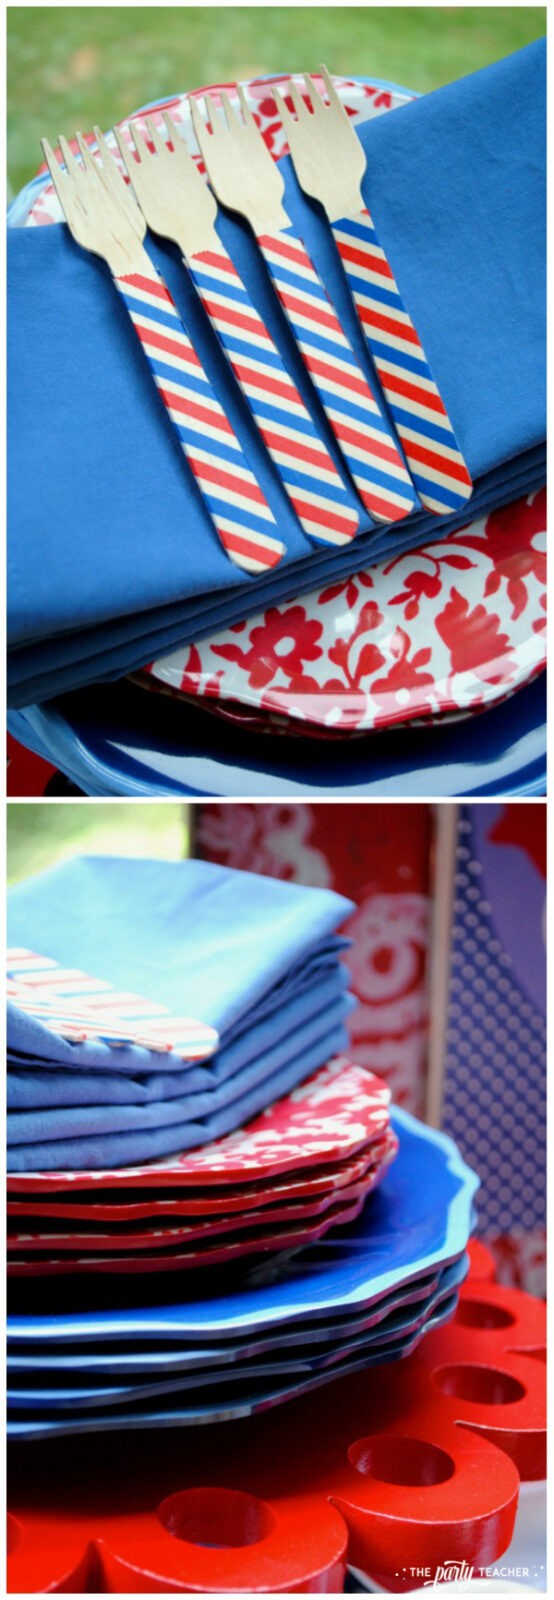 Home of the Brave 4th of July Party by The Party Teacher - washi tape forks